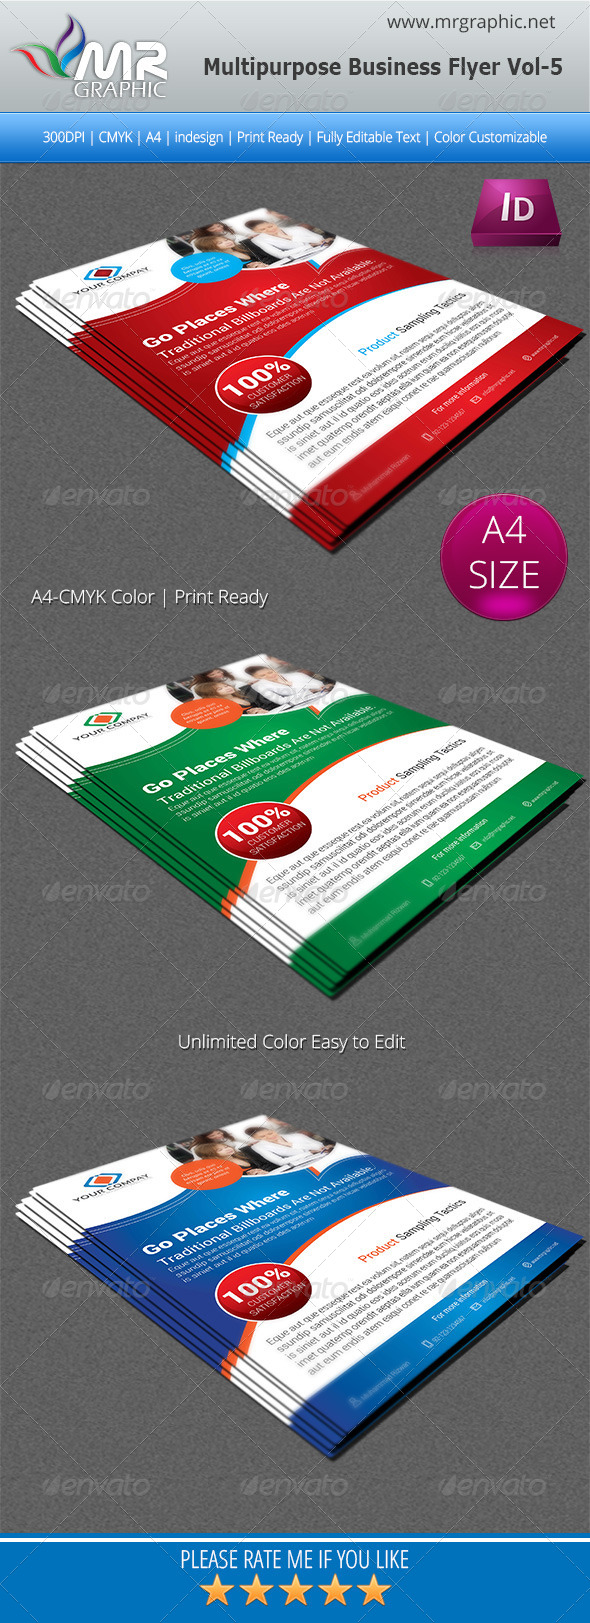 GraphicRiver Multipurpose Business Flyer Vol-05 5540236